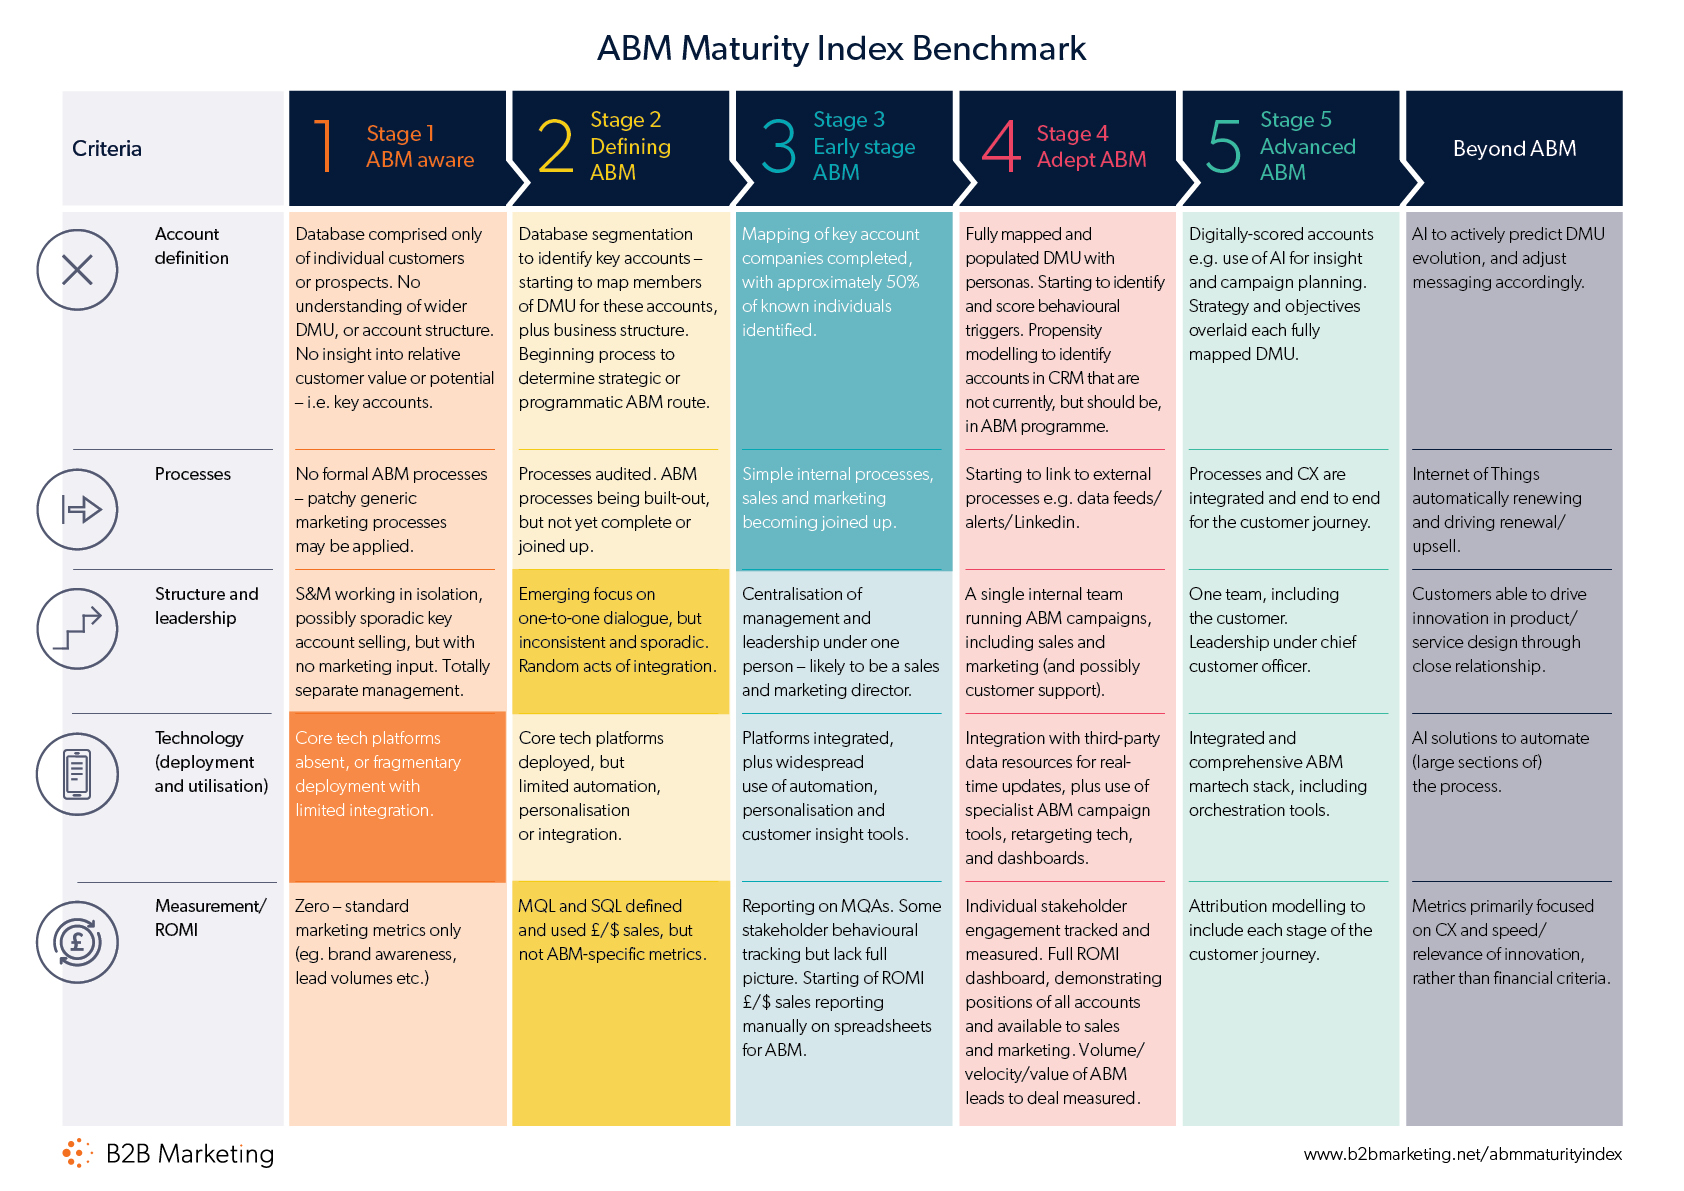 Download the ABM Maturity Index